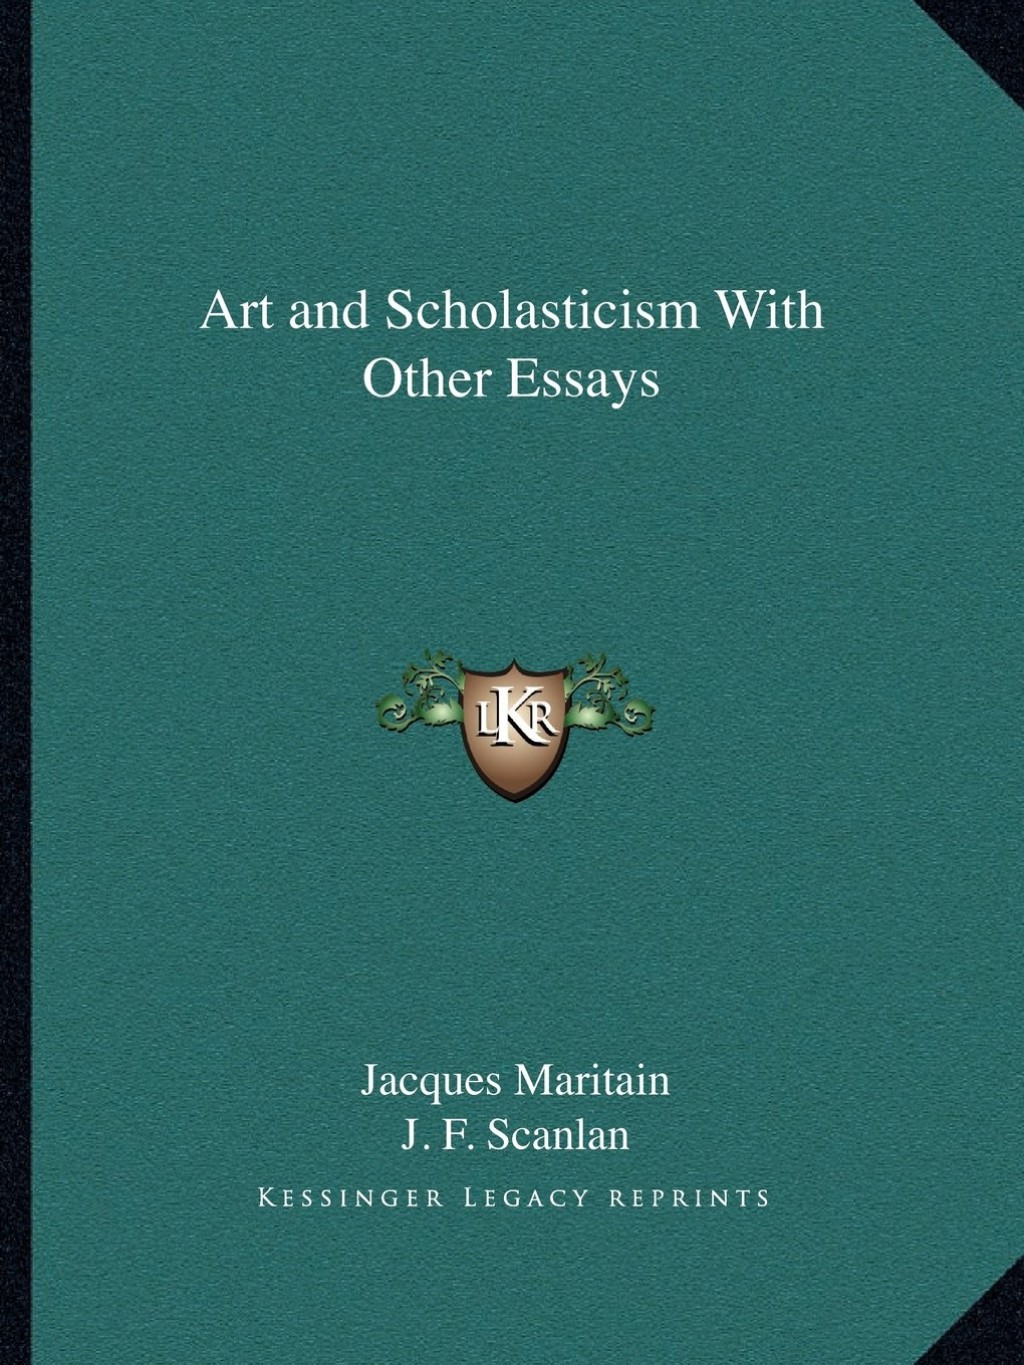 009 Art And Scholasticism With Other Essays Essay Example Impressive Large